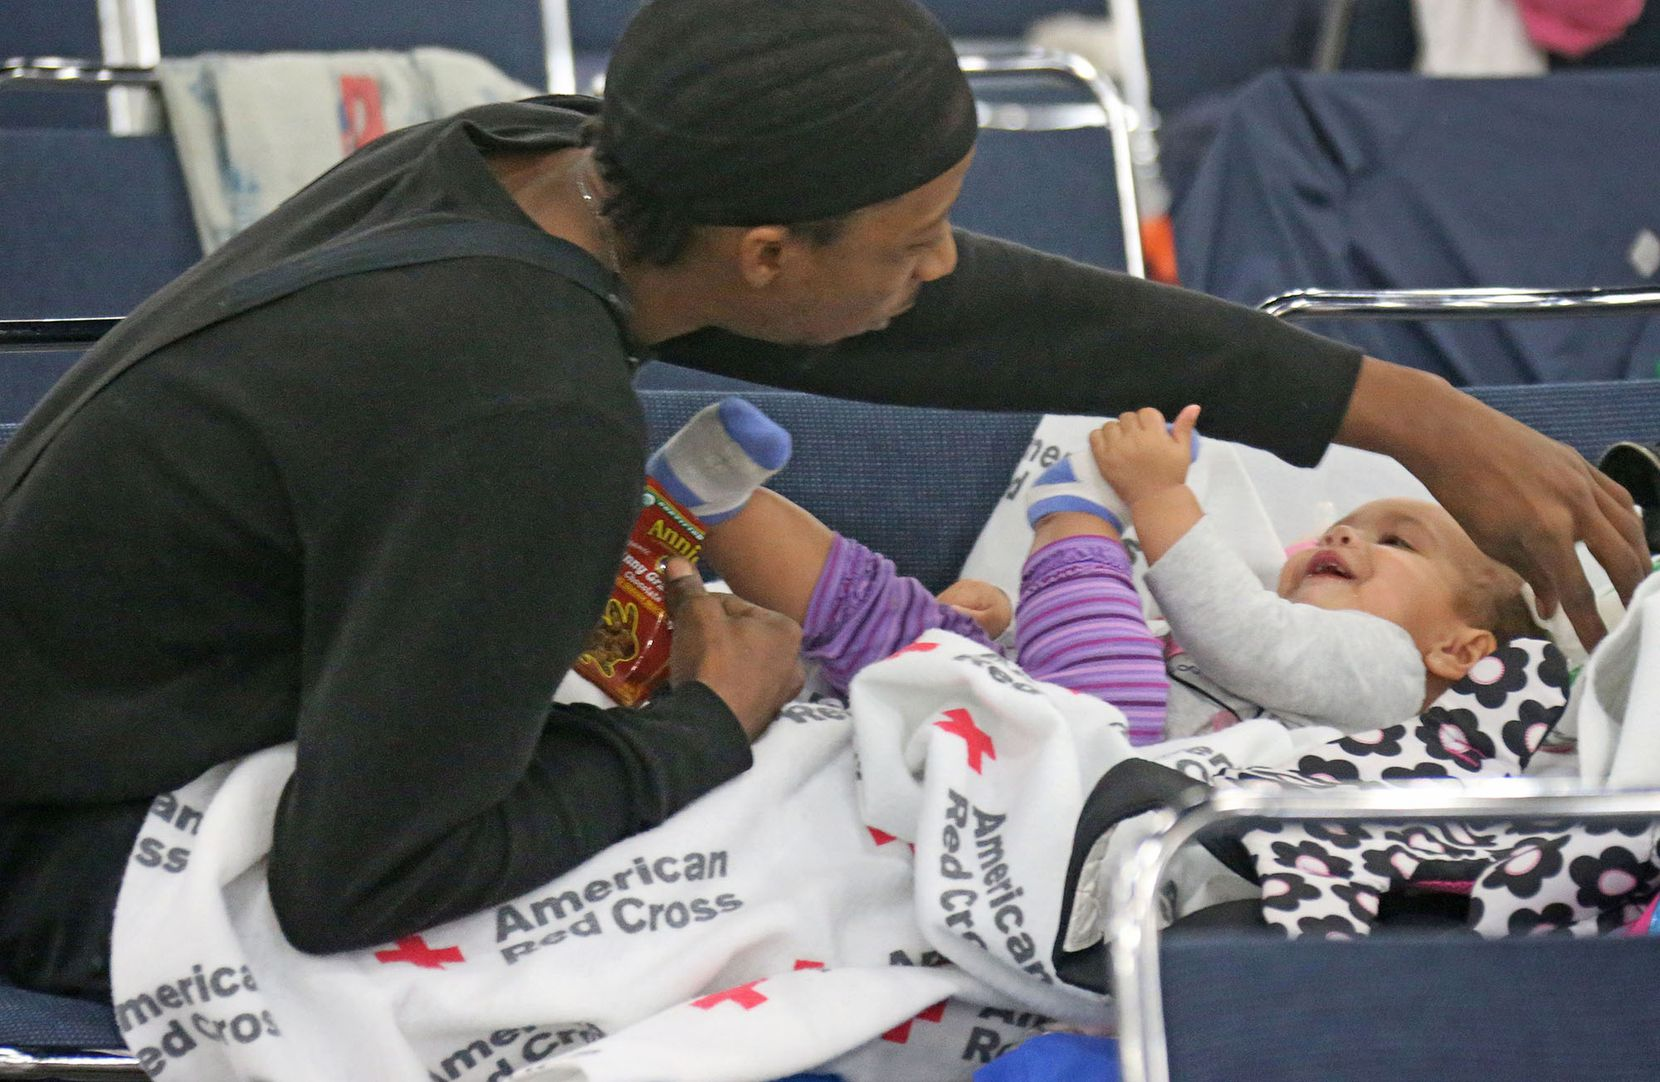 Displaced resident Darnyl Thomas plays with his daughter Riley Thomas as they try to pass the time at the George Brown Convention Center in  Houston on Monday, August 28, 2017.